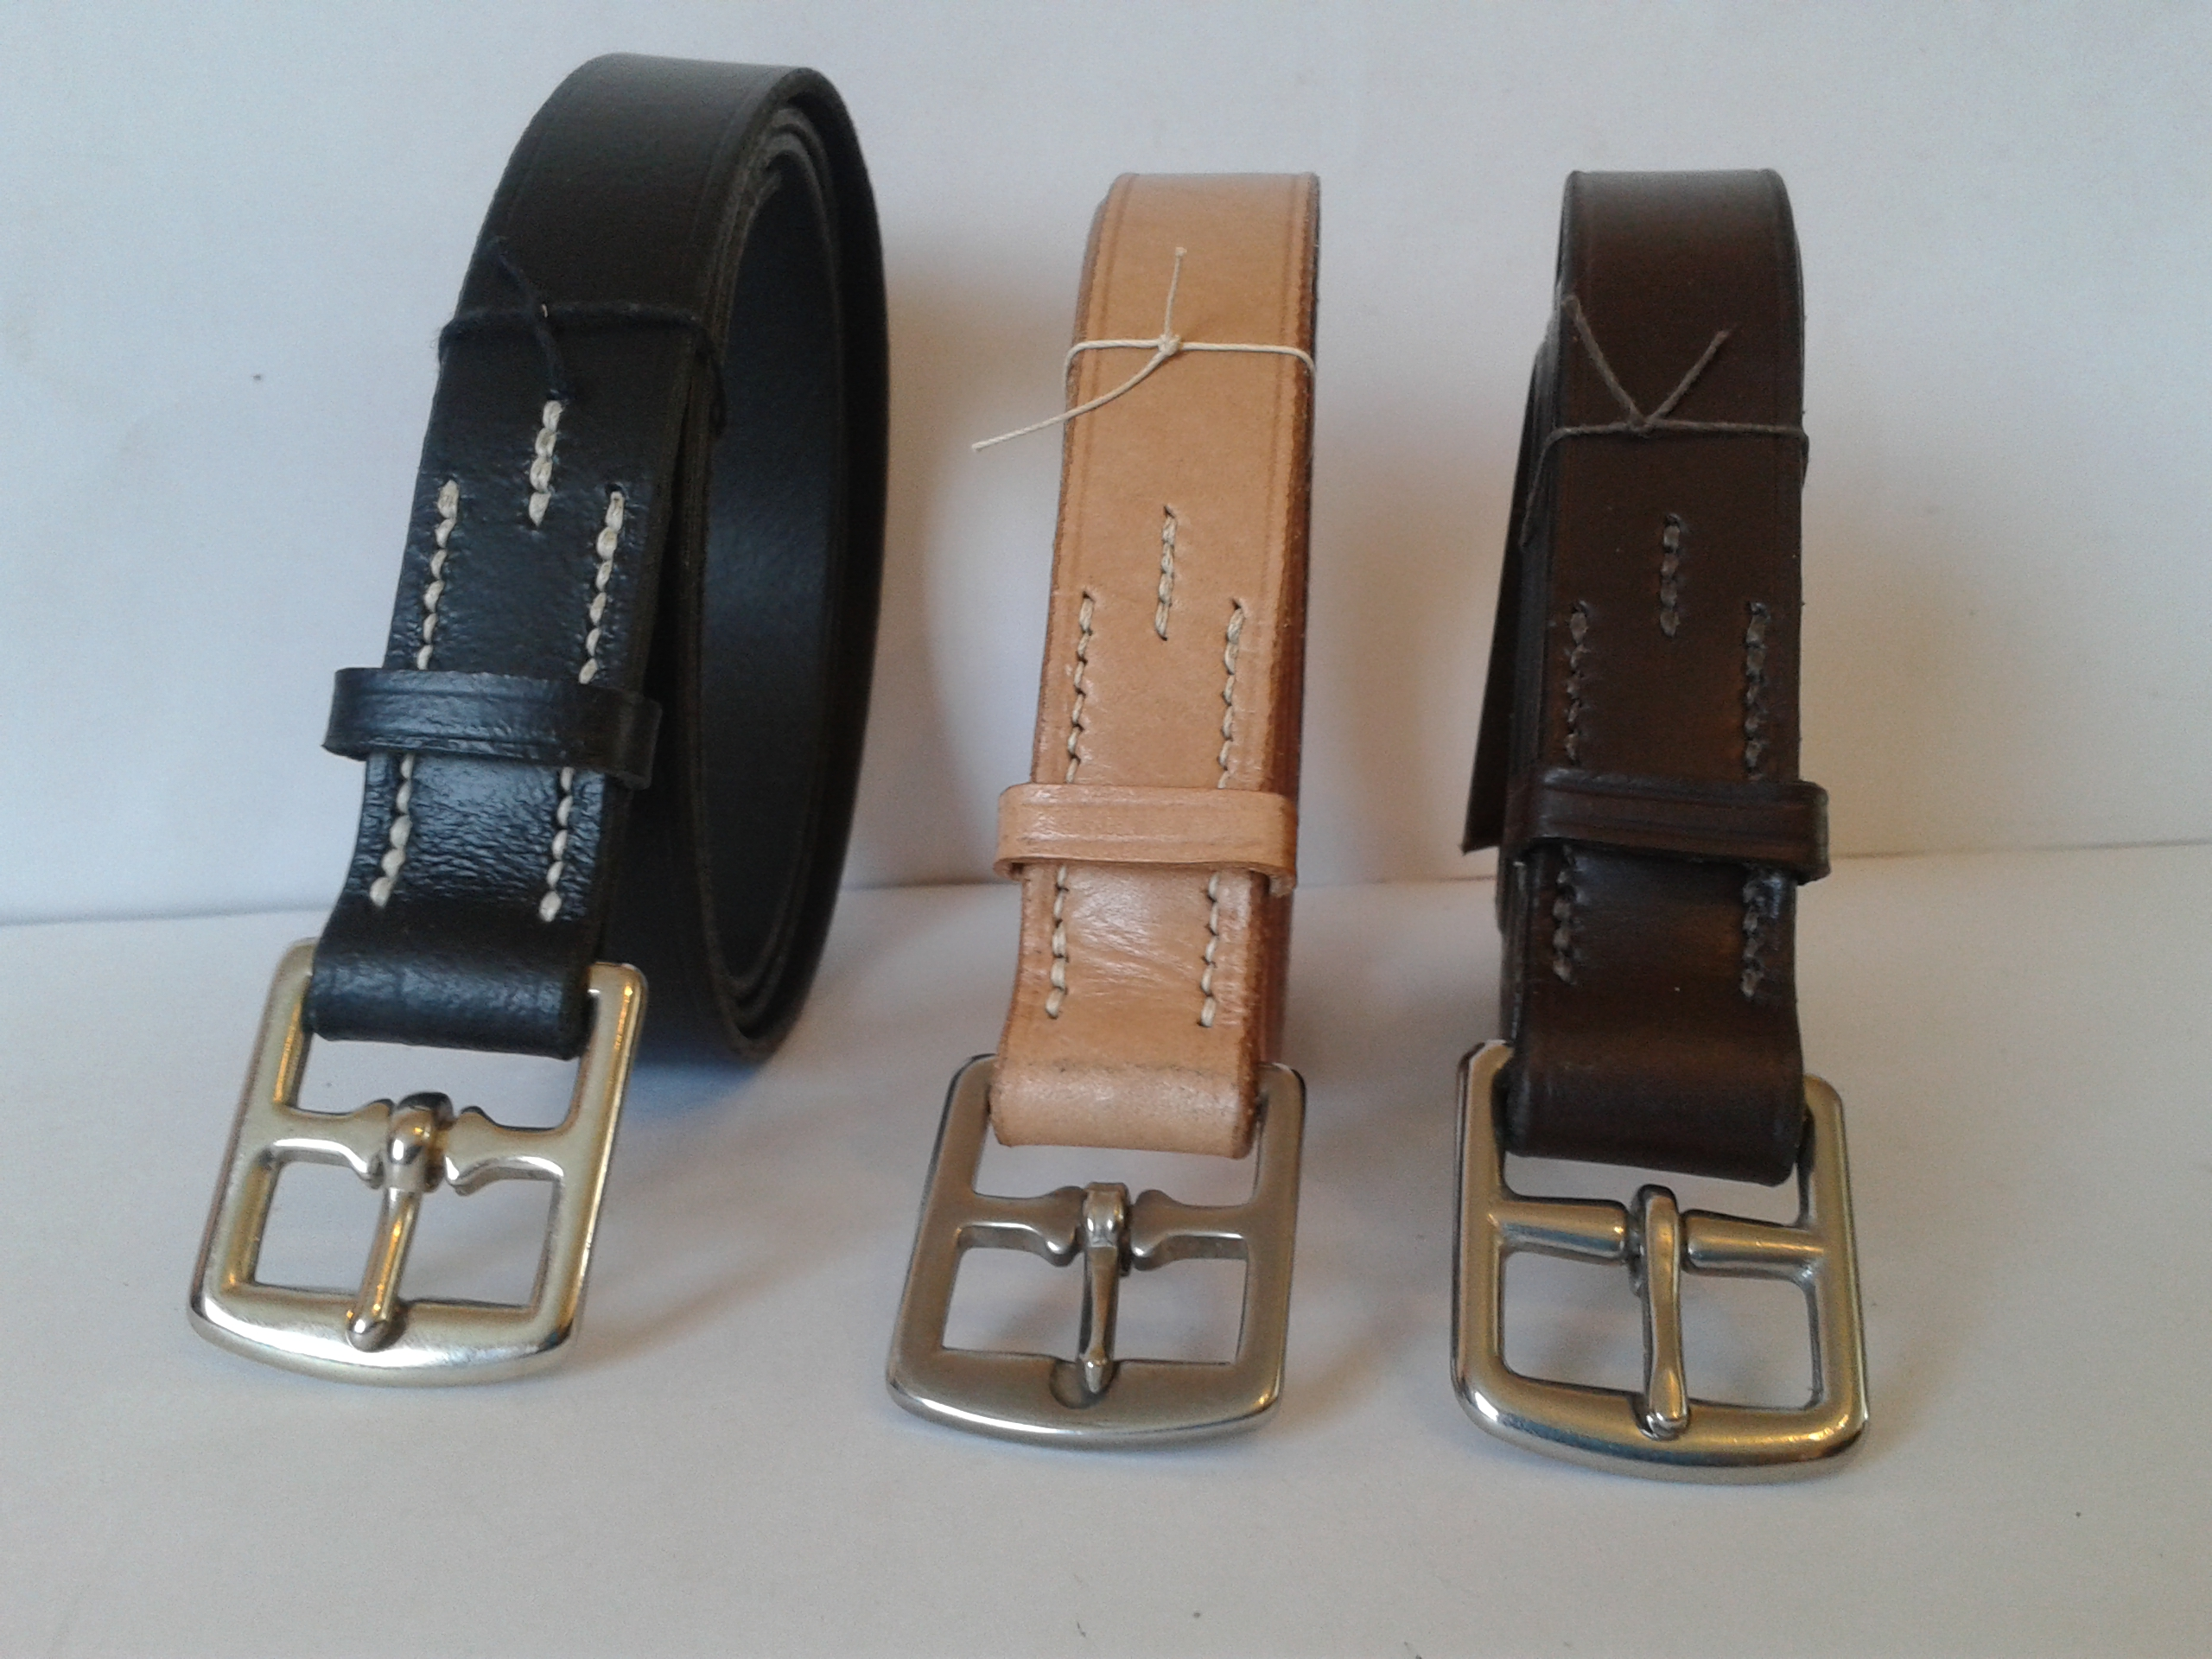 Bespoke belt for What is bespoke leather